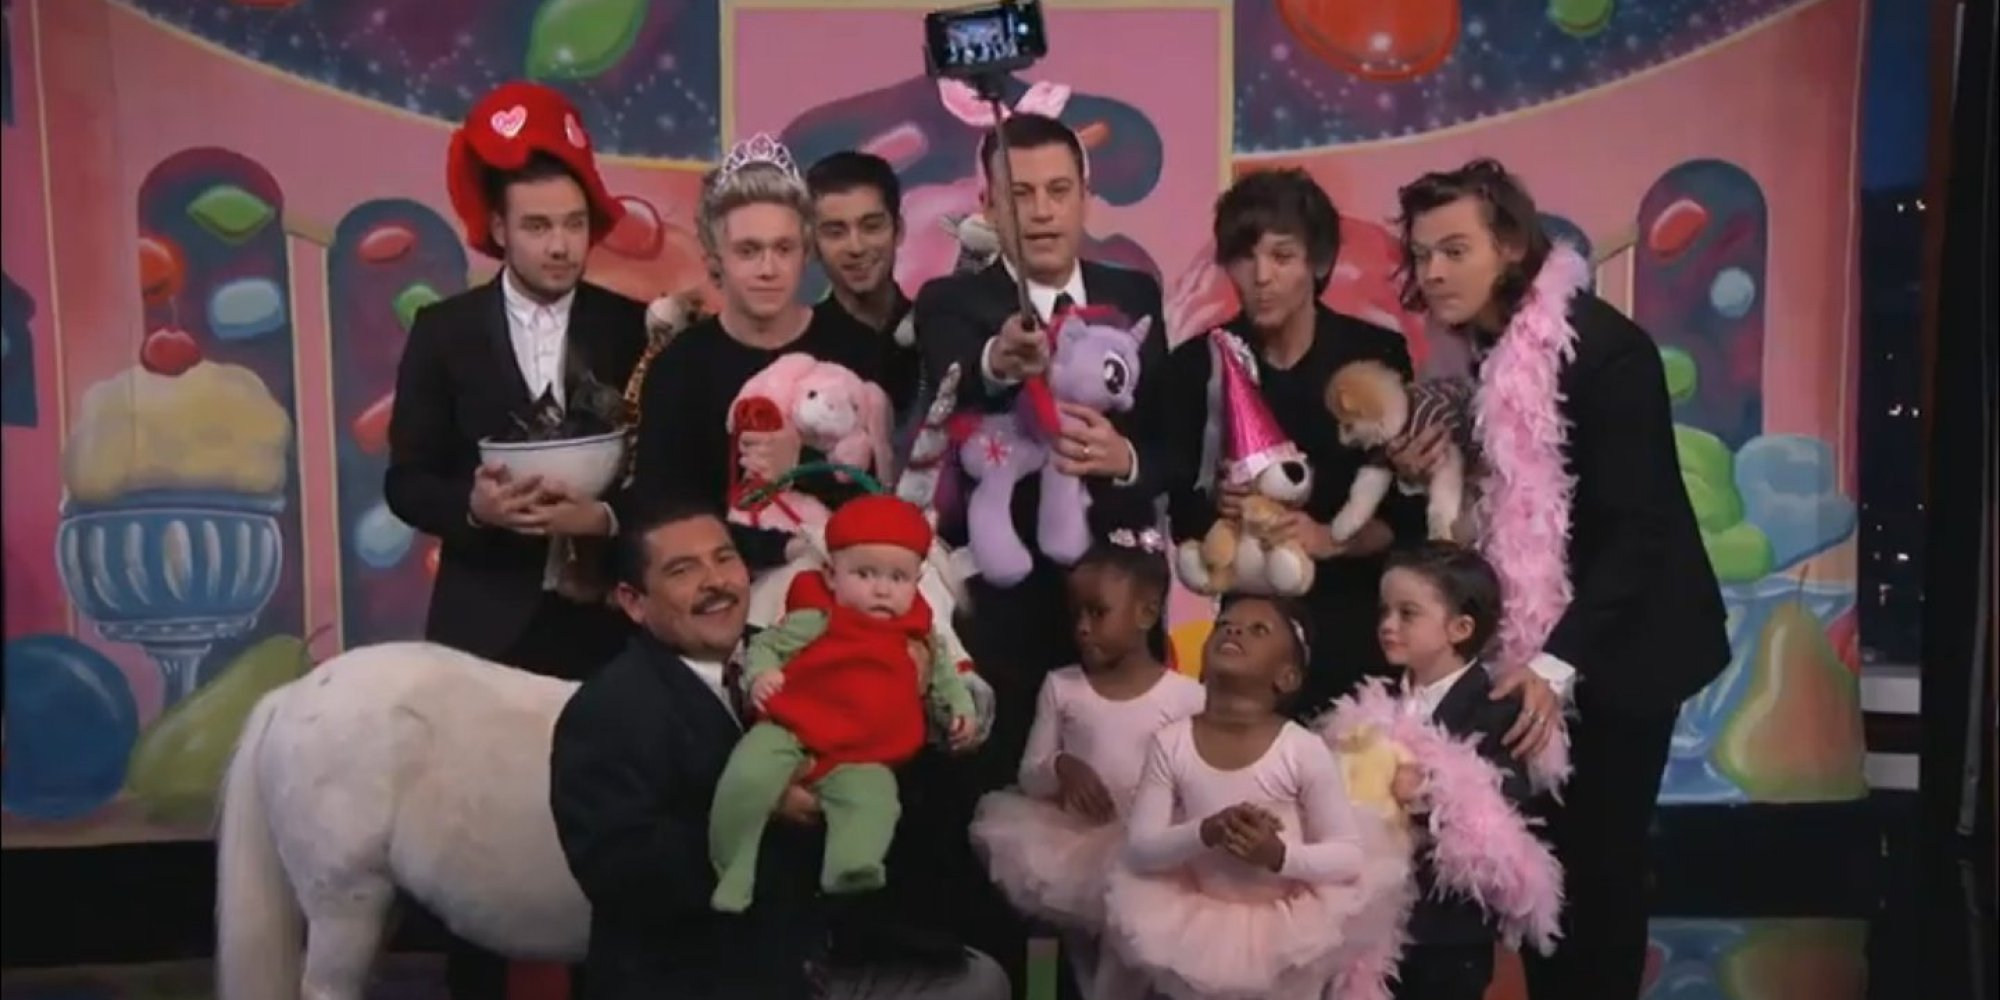 One Direction Meet And Greet Picture Ideas Bigking Keywords And Pictures